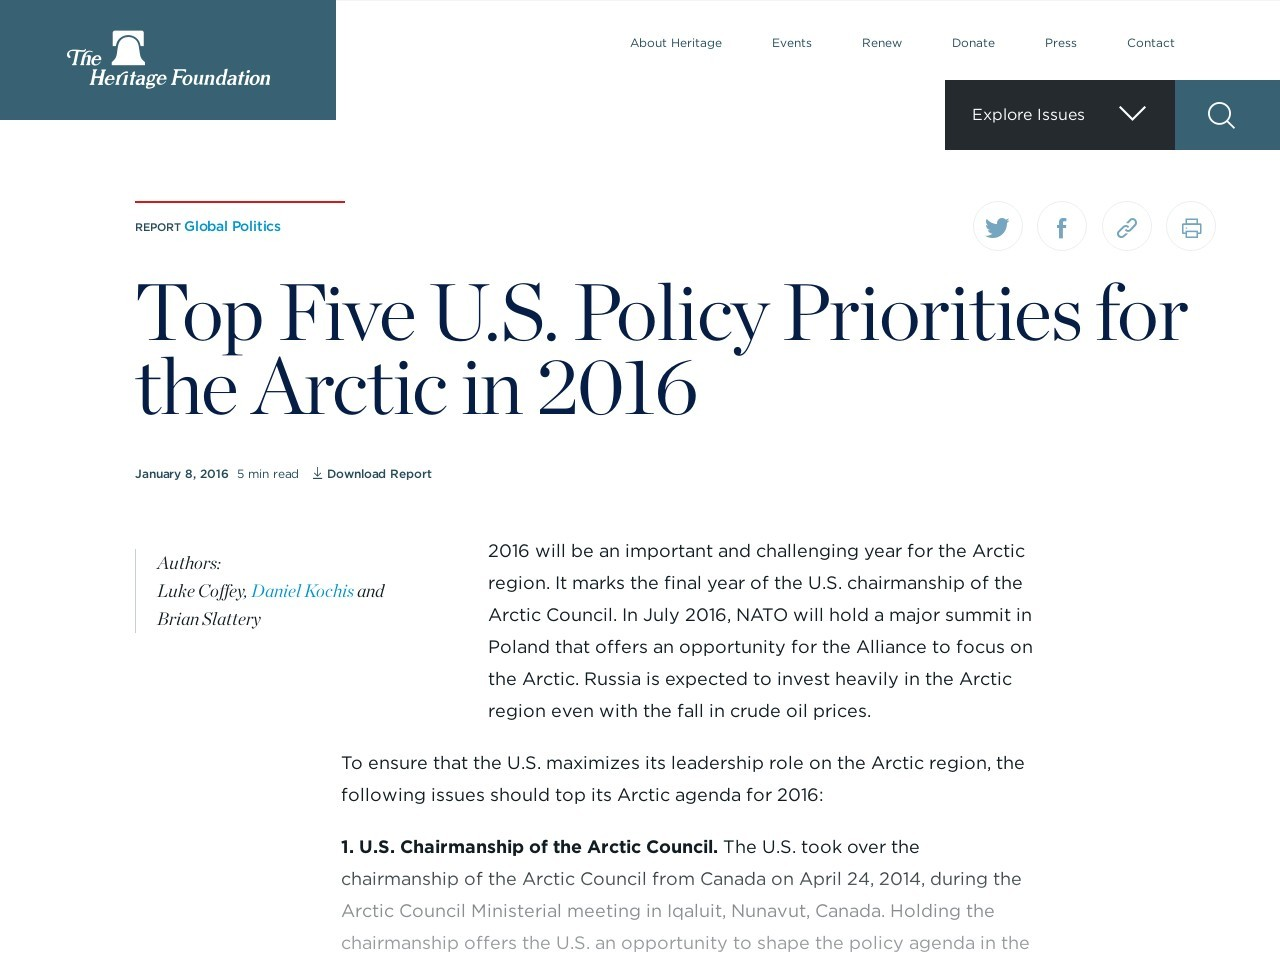 Top Five U.S. Policy Priorities for the Arctic in 2016